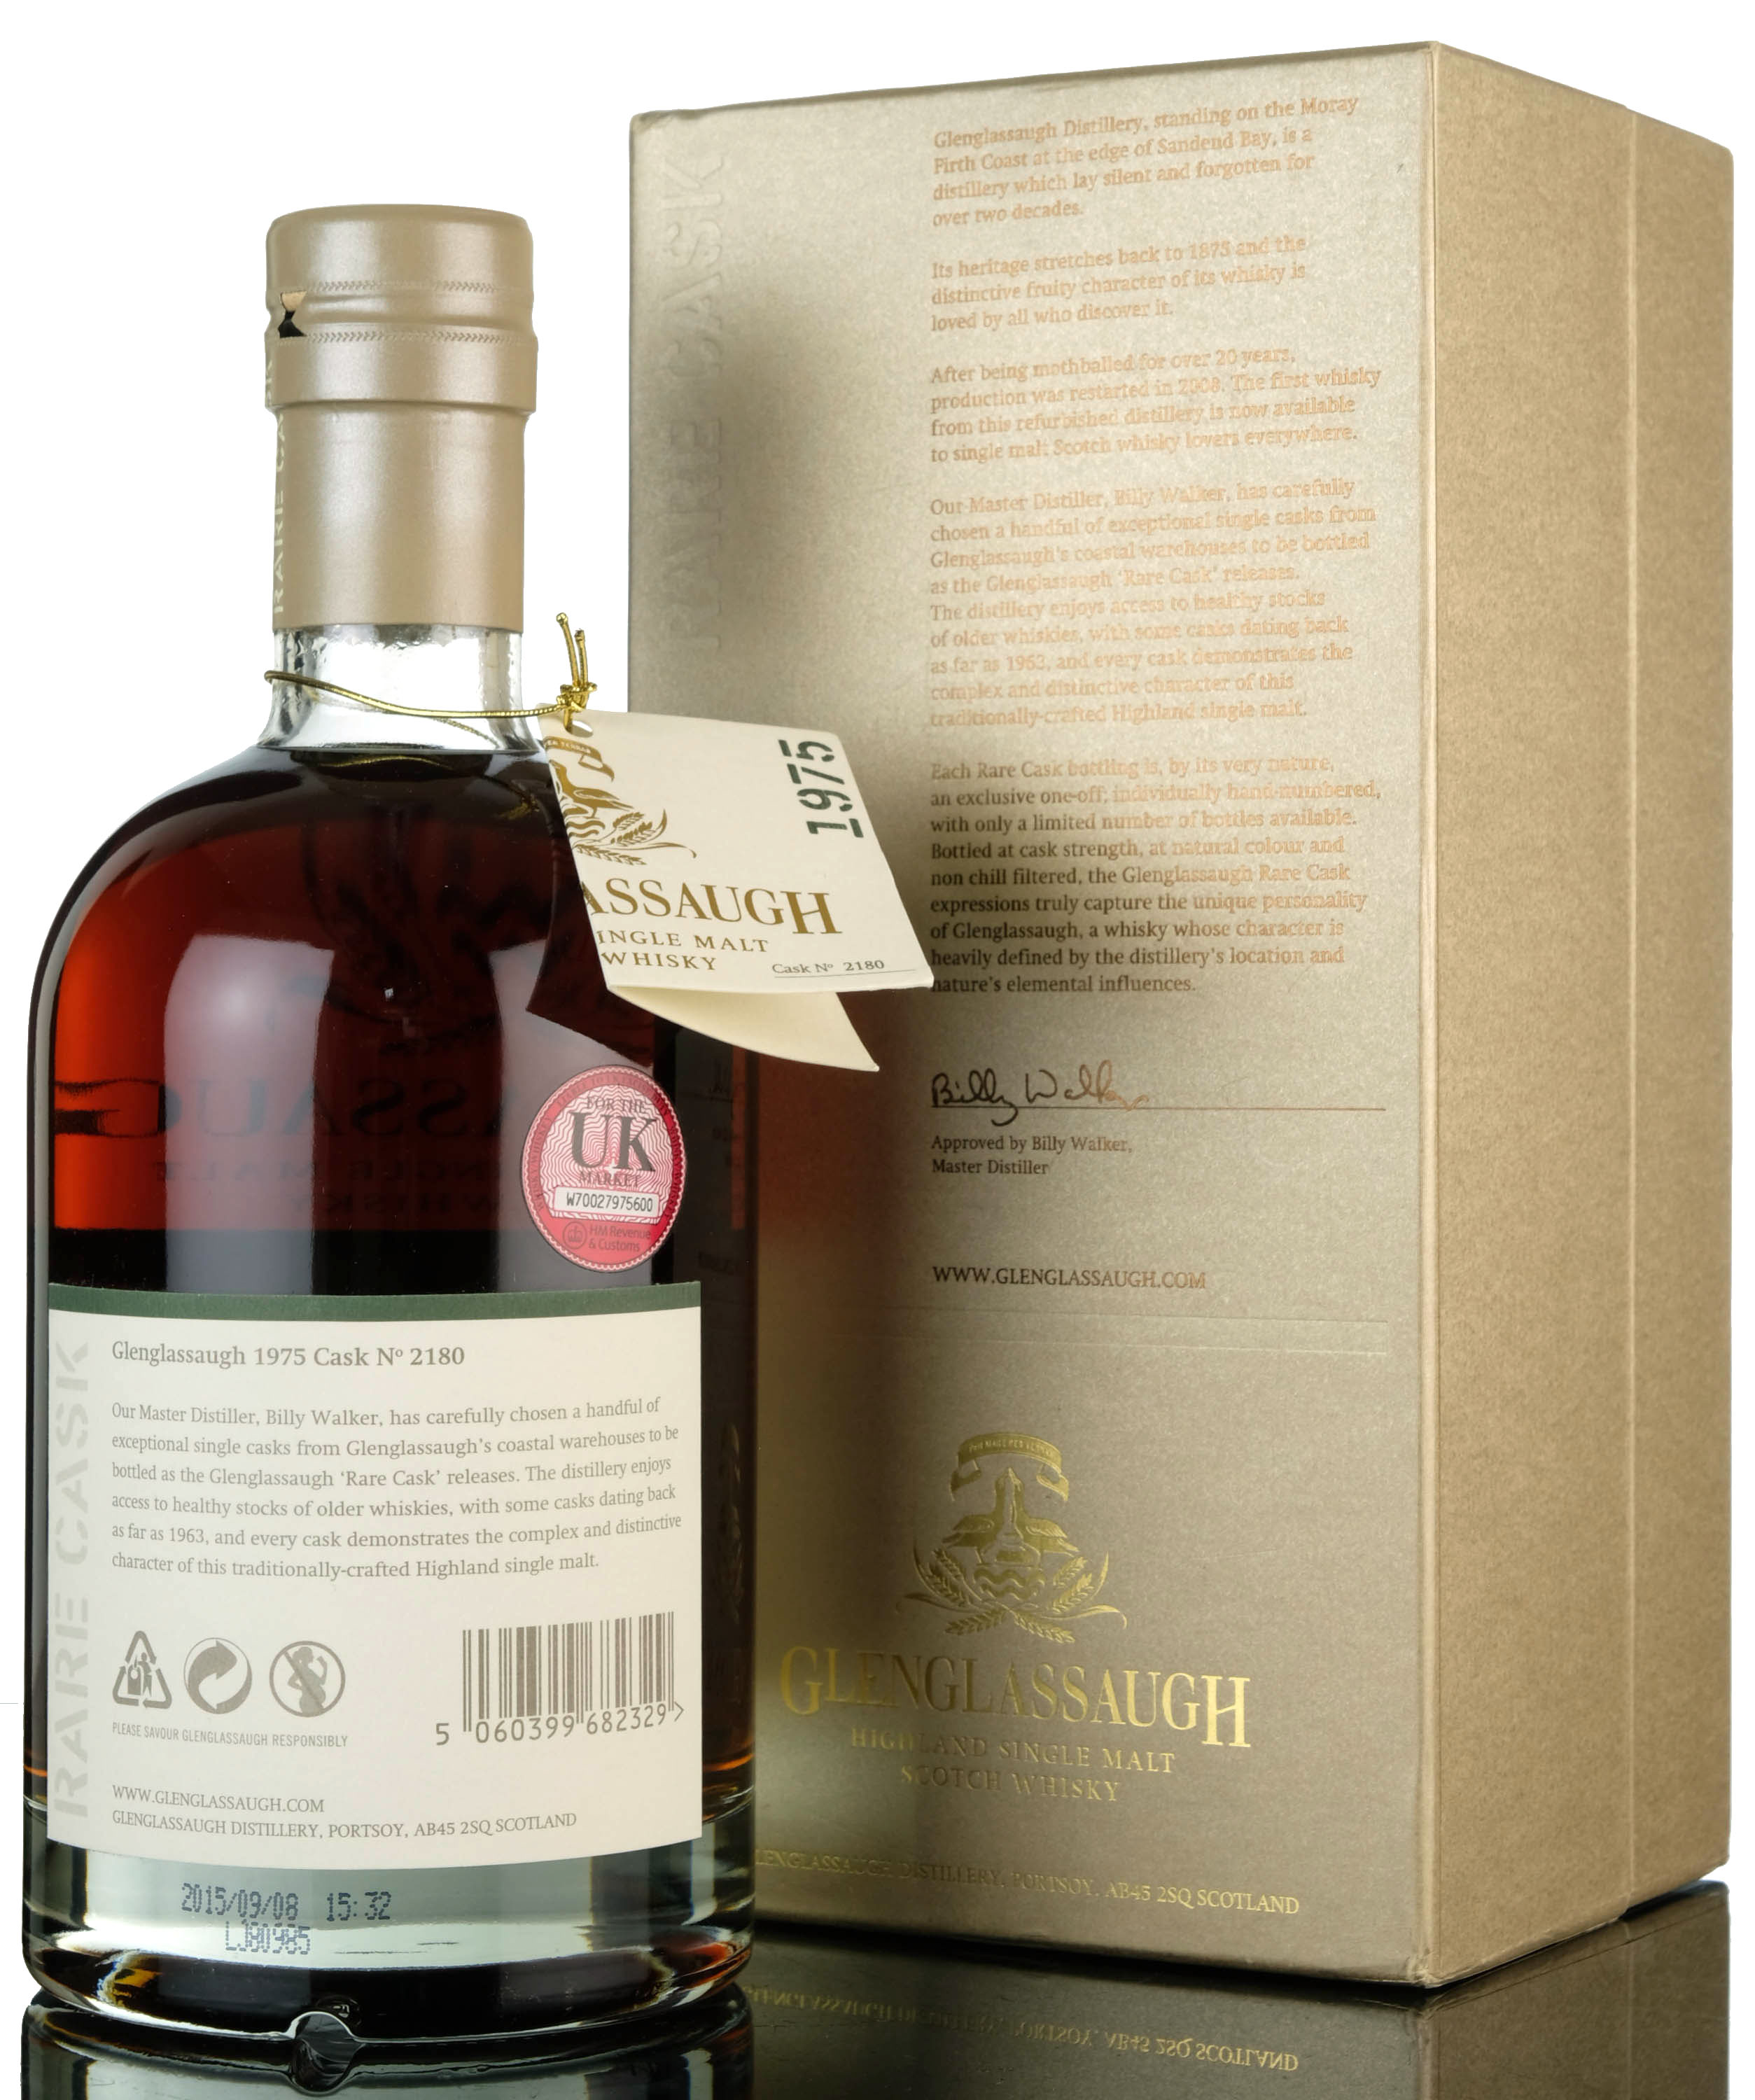 glenglassaugh 1975-2015 - 40 year old - single cask 2180